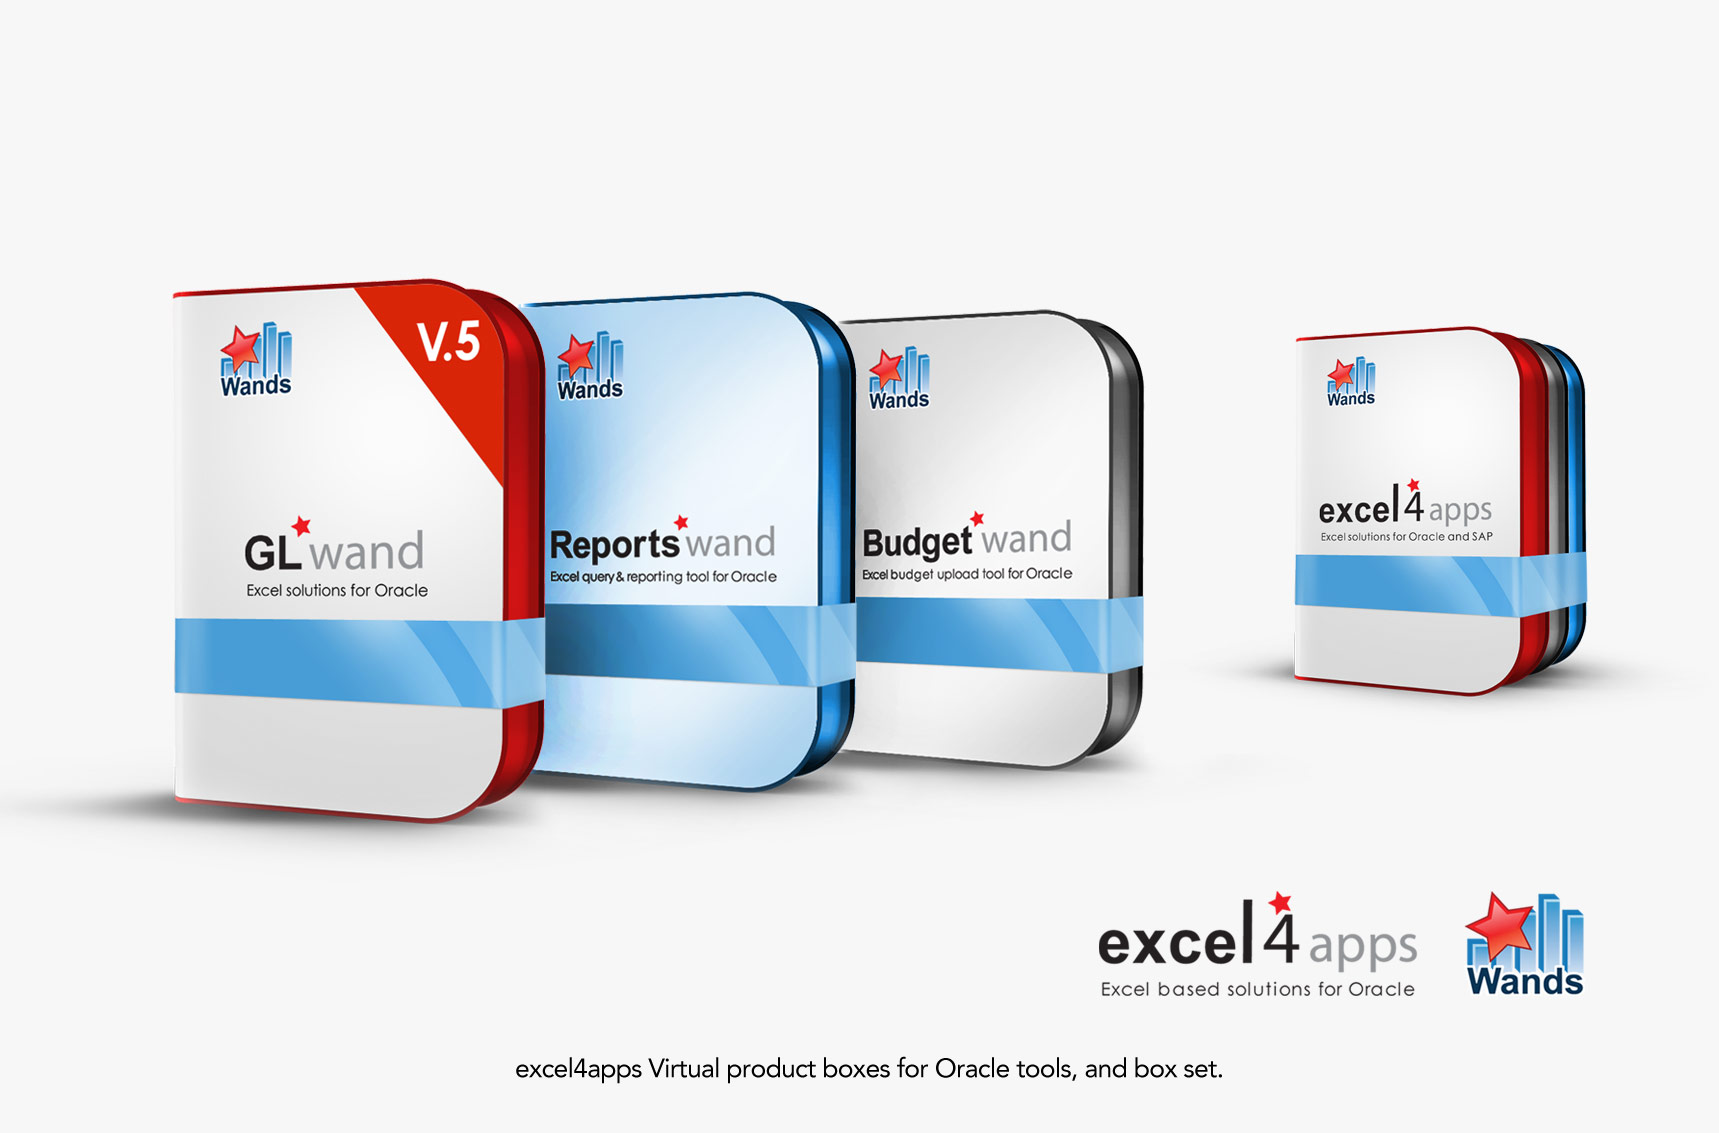 Excel4apps Virtual Product boxes 3D Photo illustration